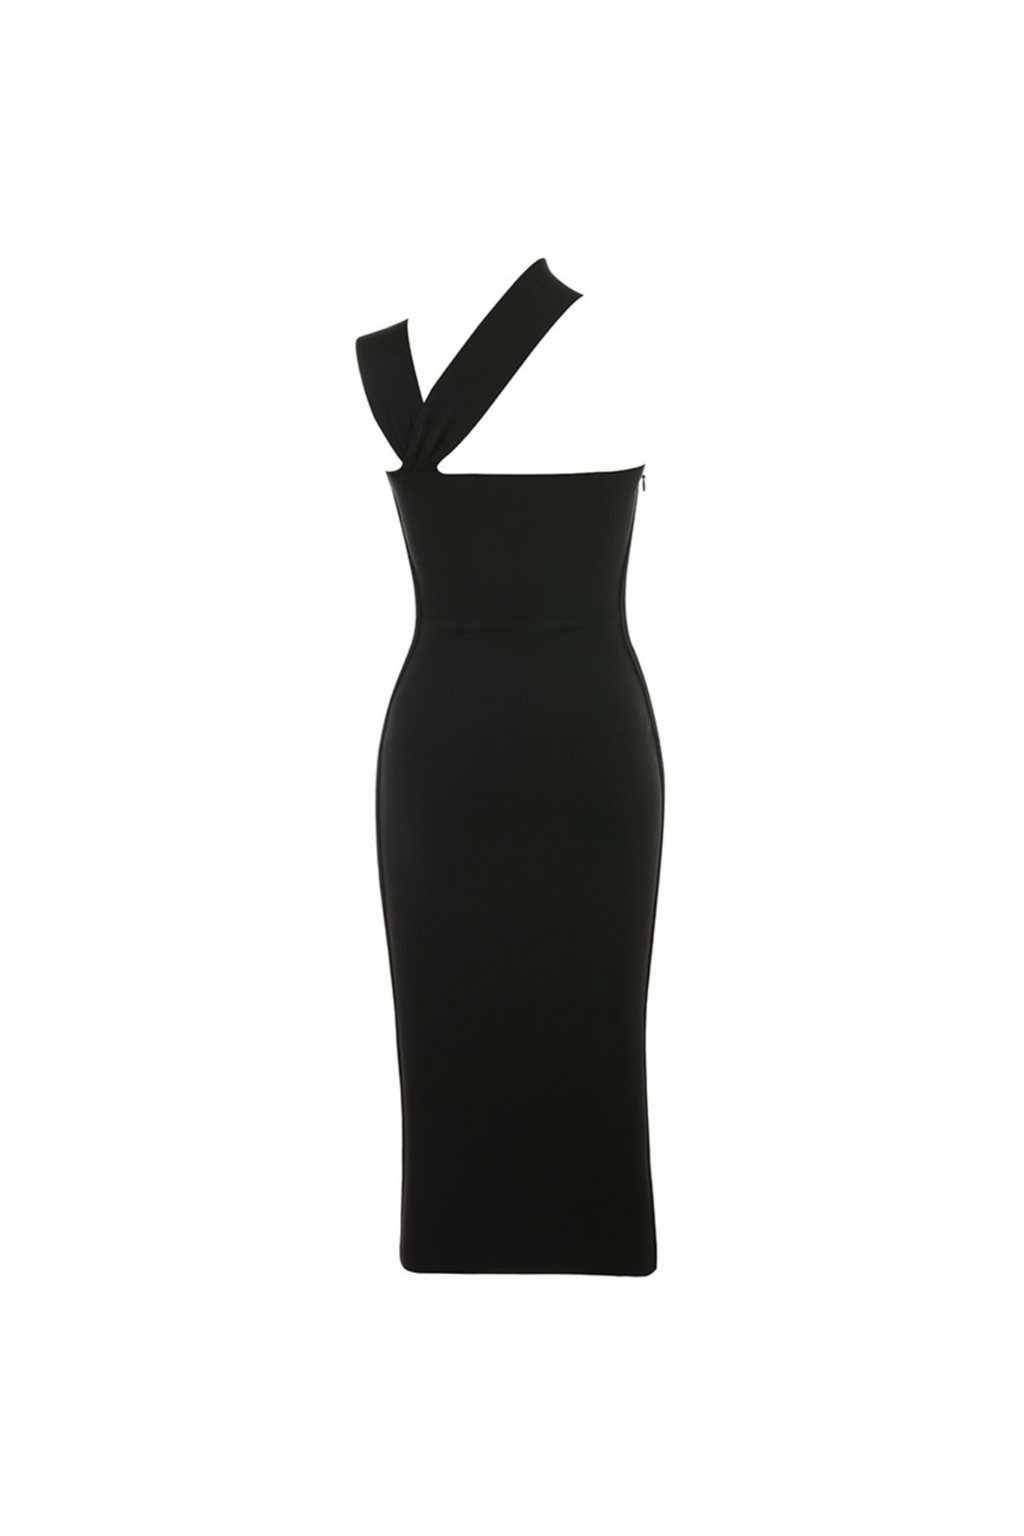 """SERI"" MIDI BANDAGE DRESS-BLACK - TOXIC ENVY BOUTIQUE"